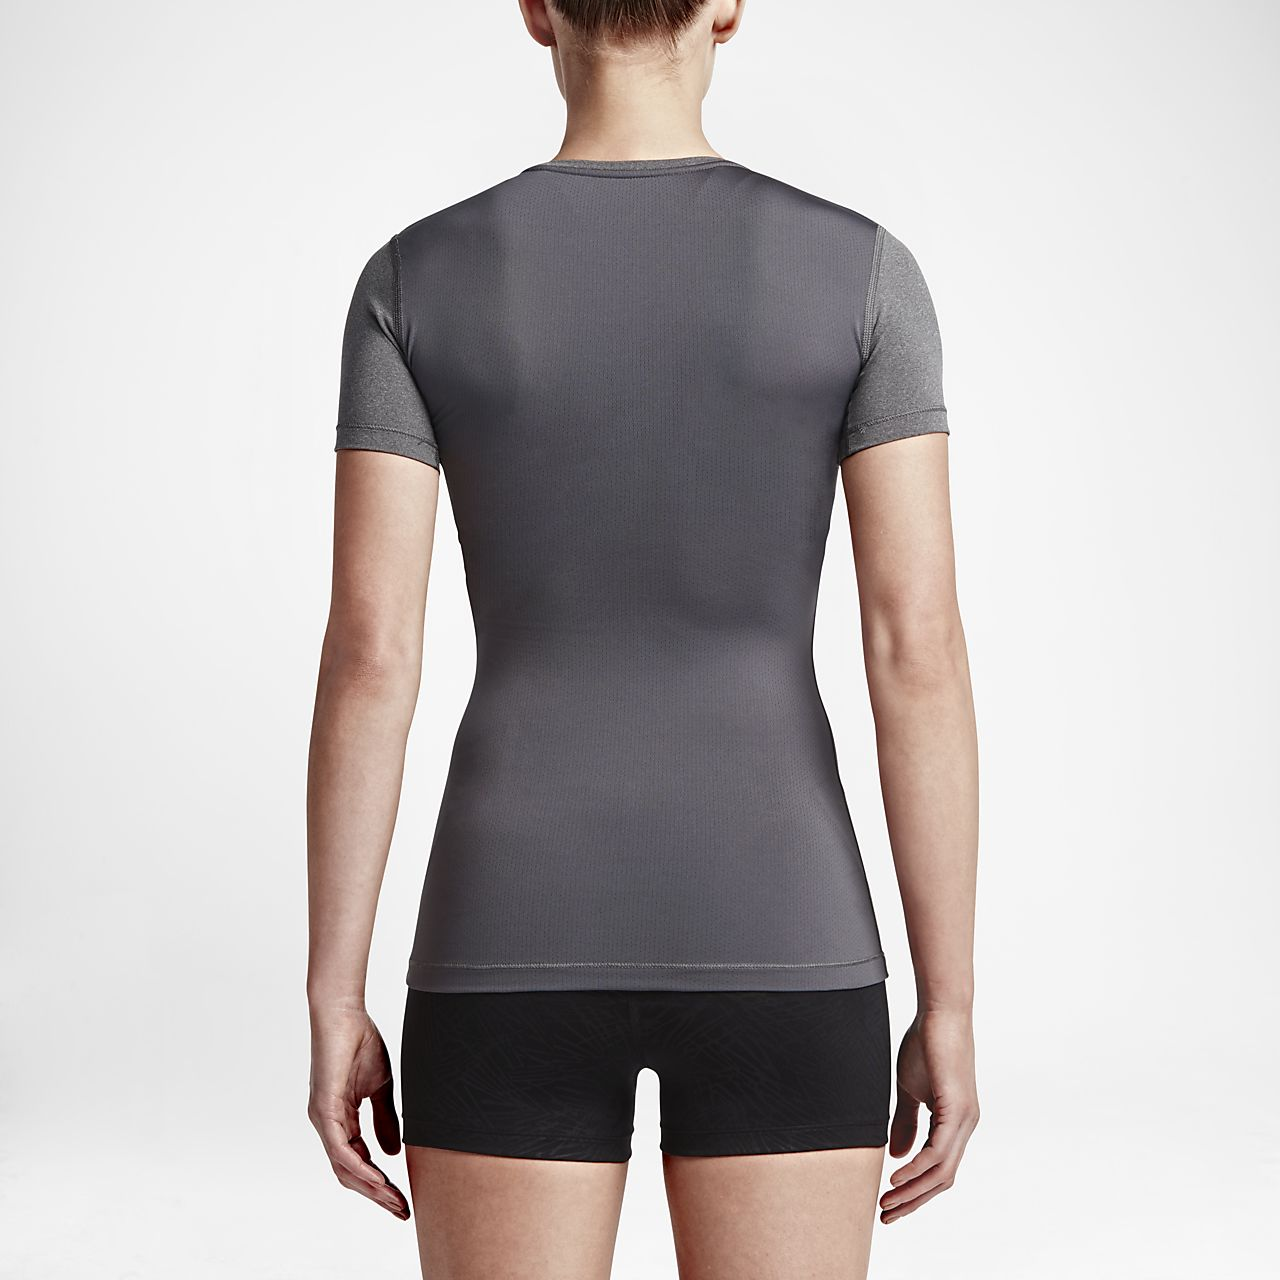 ... Nike Pro Women's Short Sleeve Training Top